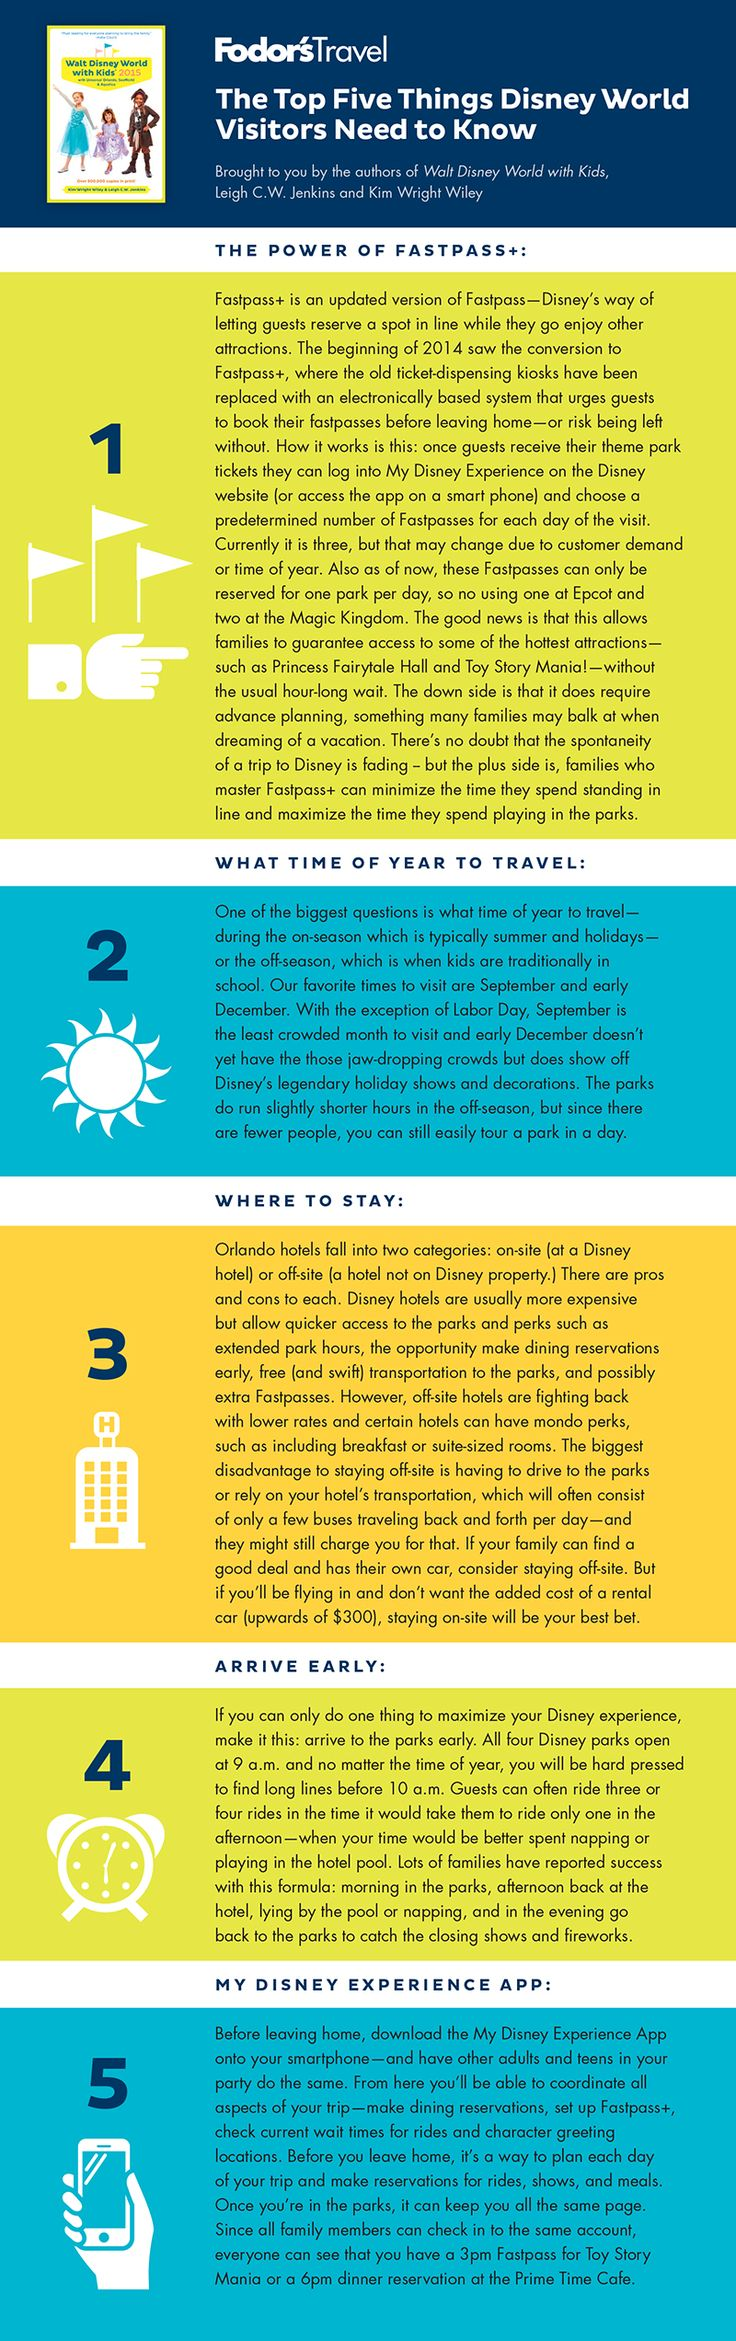 The top 5 things you need to know when visiting Disney World.